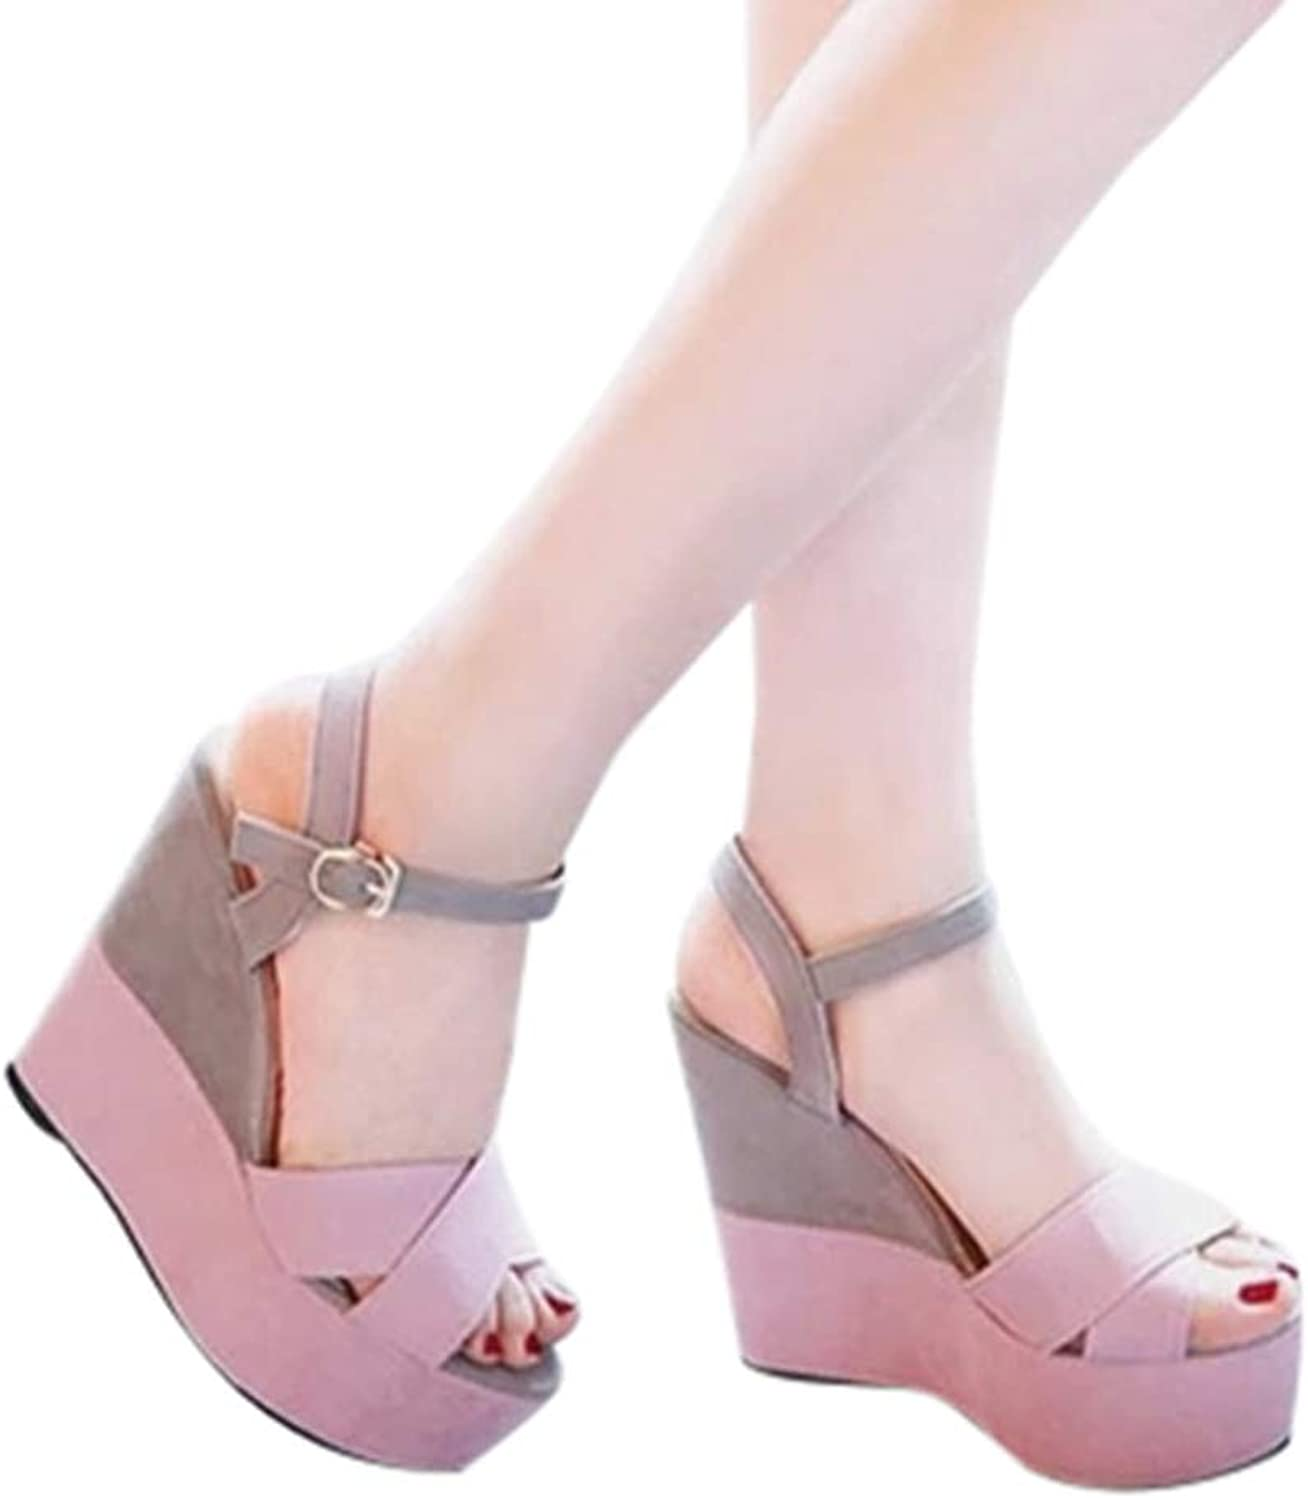 Fheaven Platfrom Sandals Women Summer Buckle Peep Toe Wedges Casual Sandals shoes Non-Slip (7, Pink)